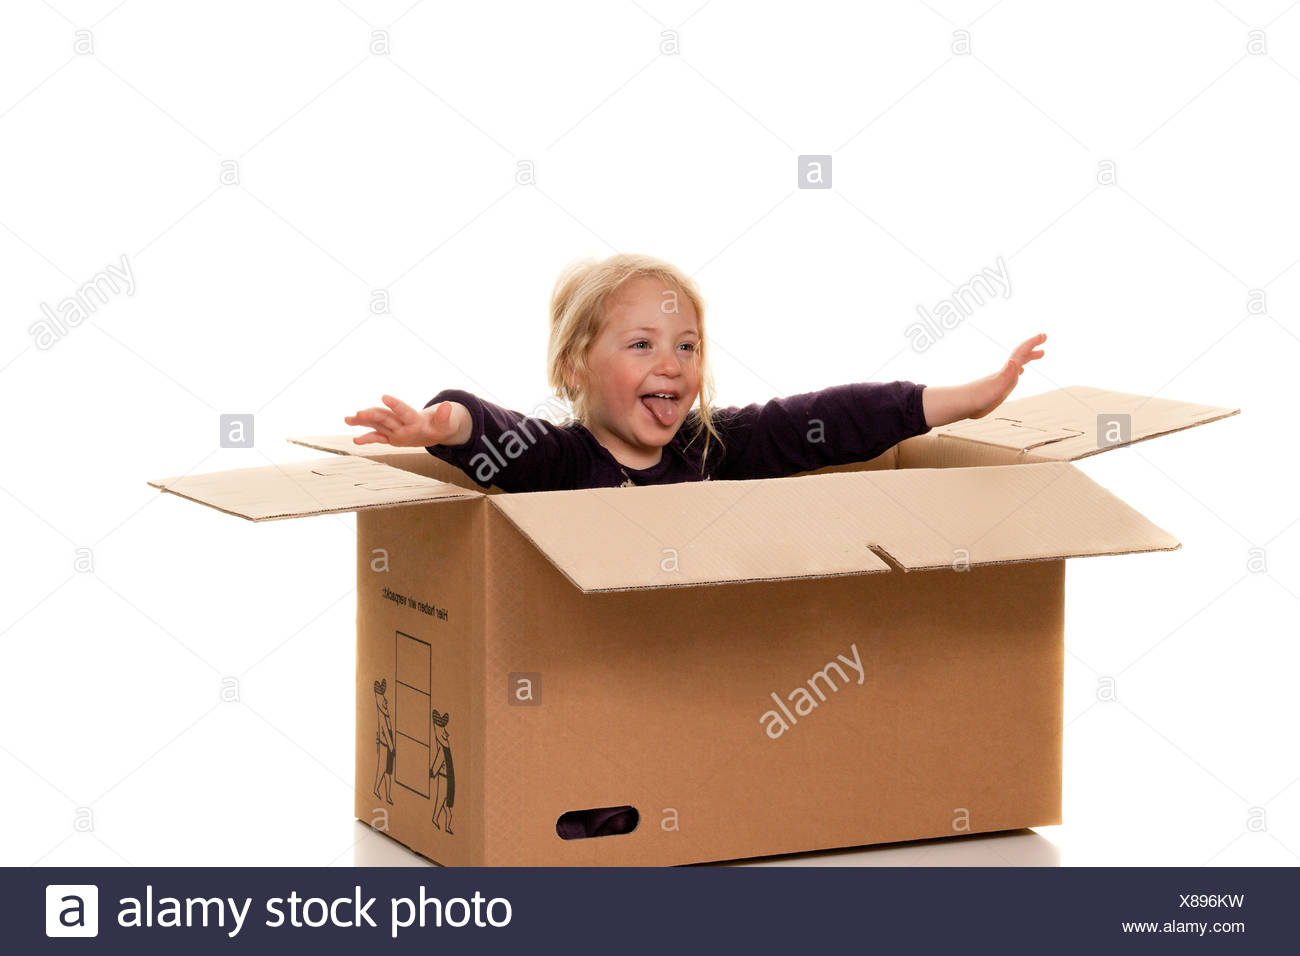 Child in cardboard box. Is moving to box. Stock Photo